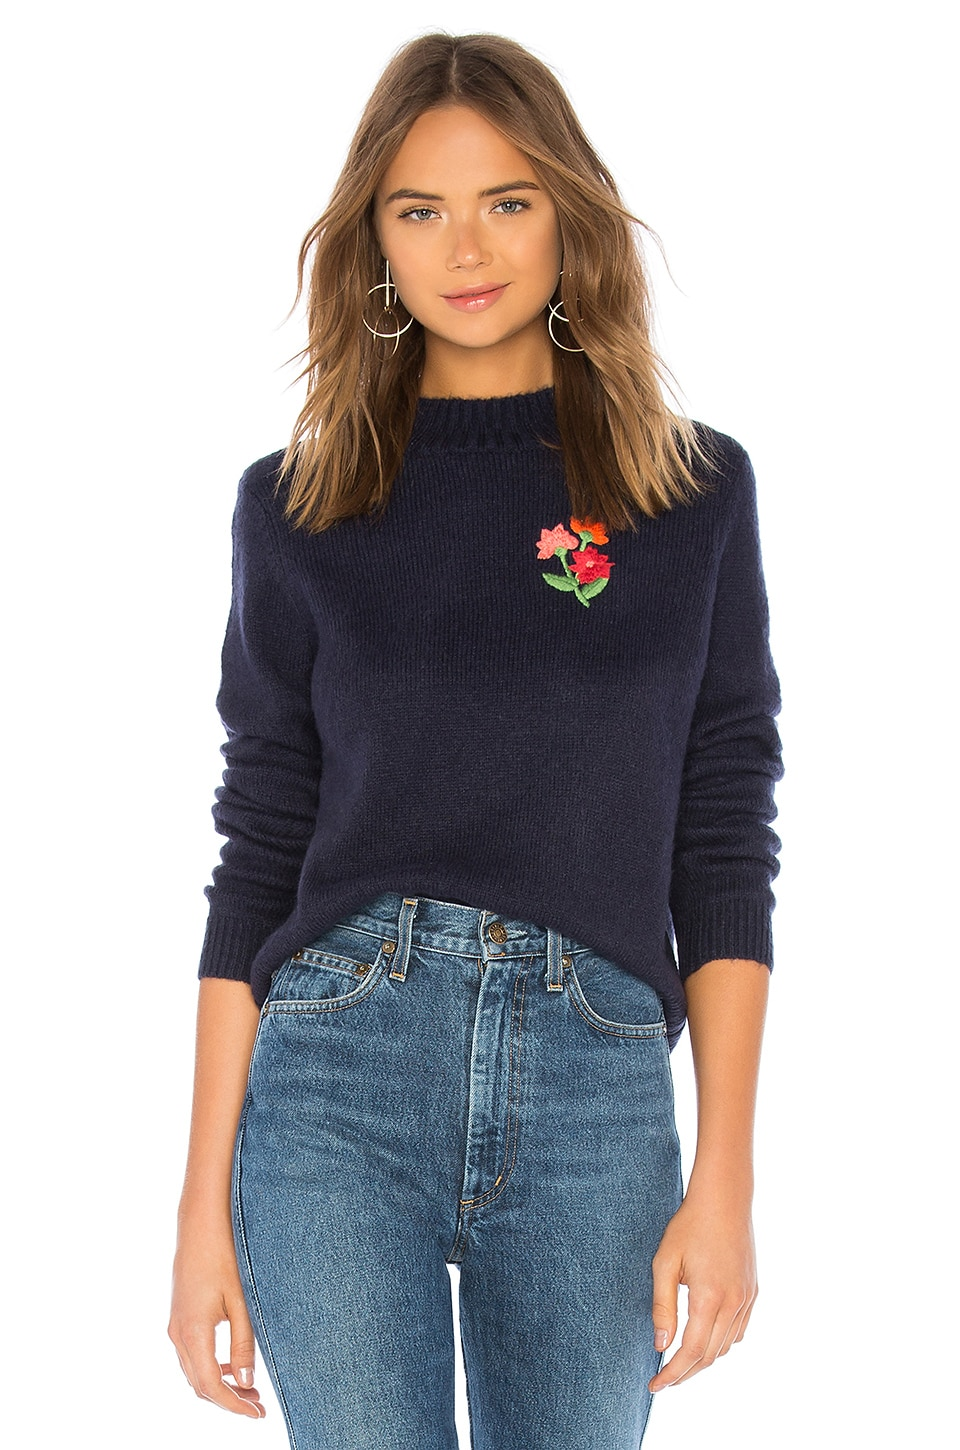 House of Harlow 1960 FLORAL EMBROIDERED SWEATER 스웨터